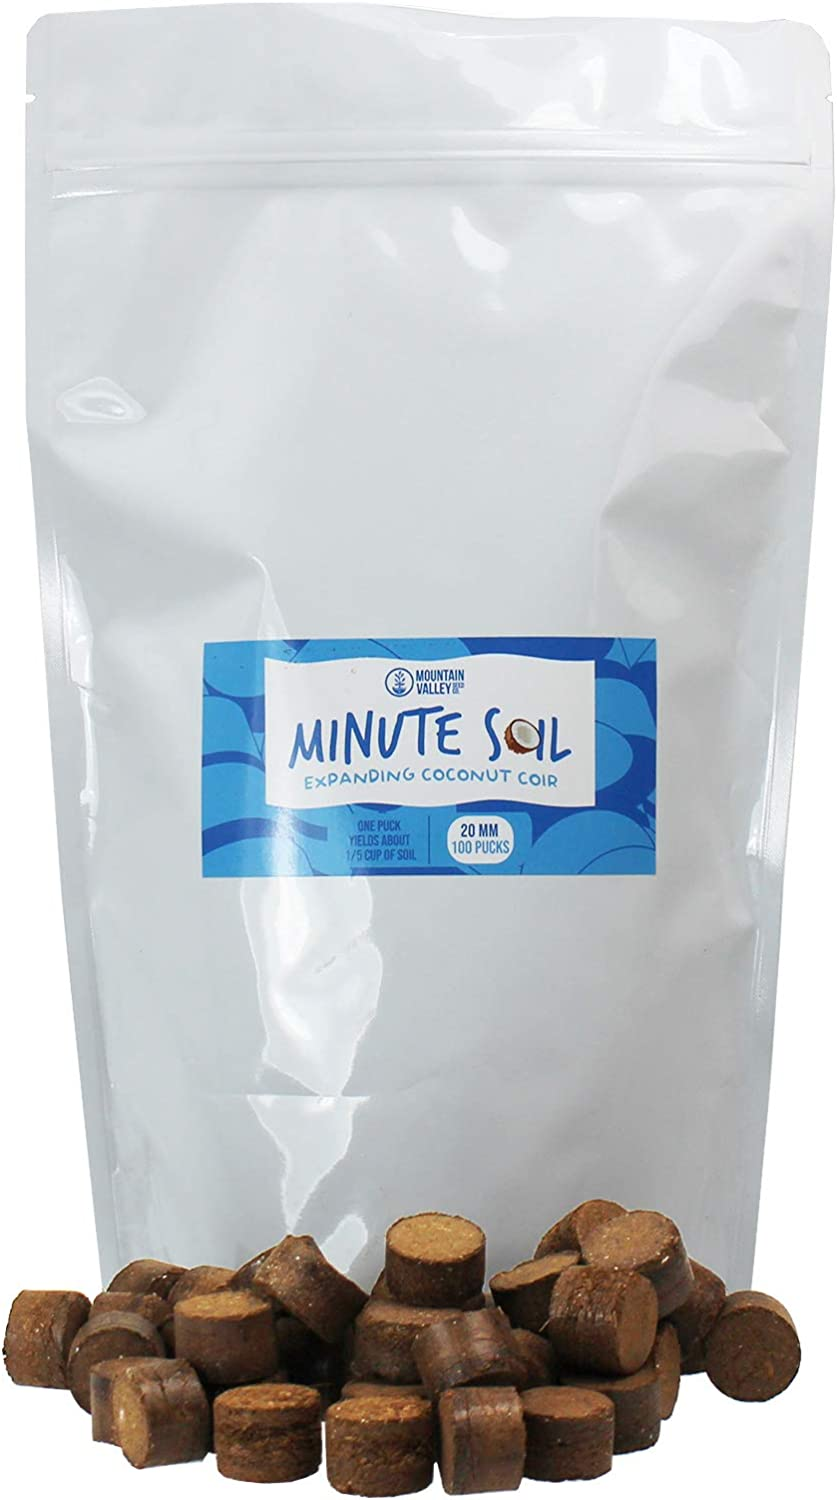 Minute Soil - Compressed Coco Coir Fiber Grow Medium - 20 MM Pellets - Bag of 100 = 5 Quarts of Potting Soil - Indoor Growing: House Plants, Herbs, Microgreens, Just Add Water - Peat Free - OMRI